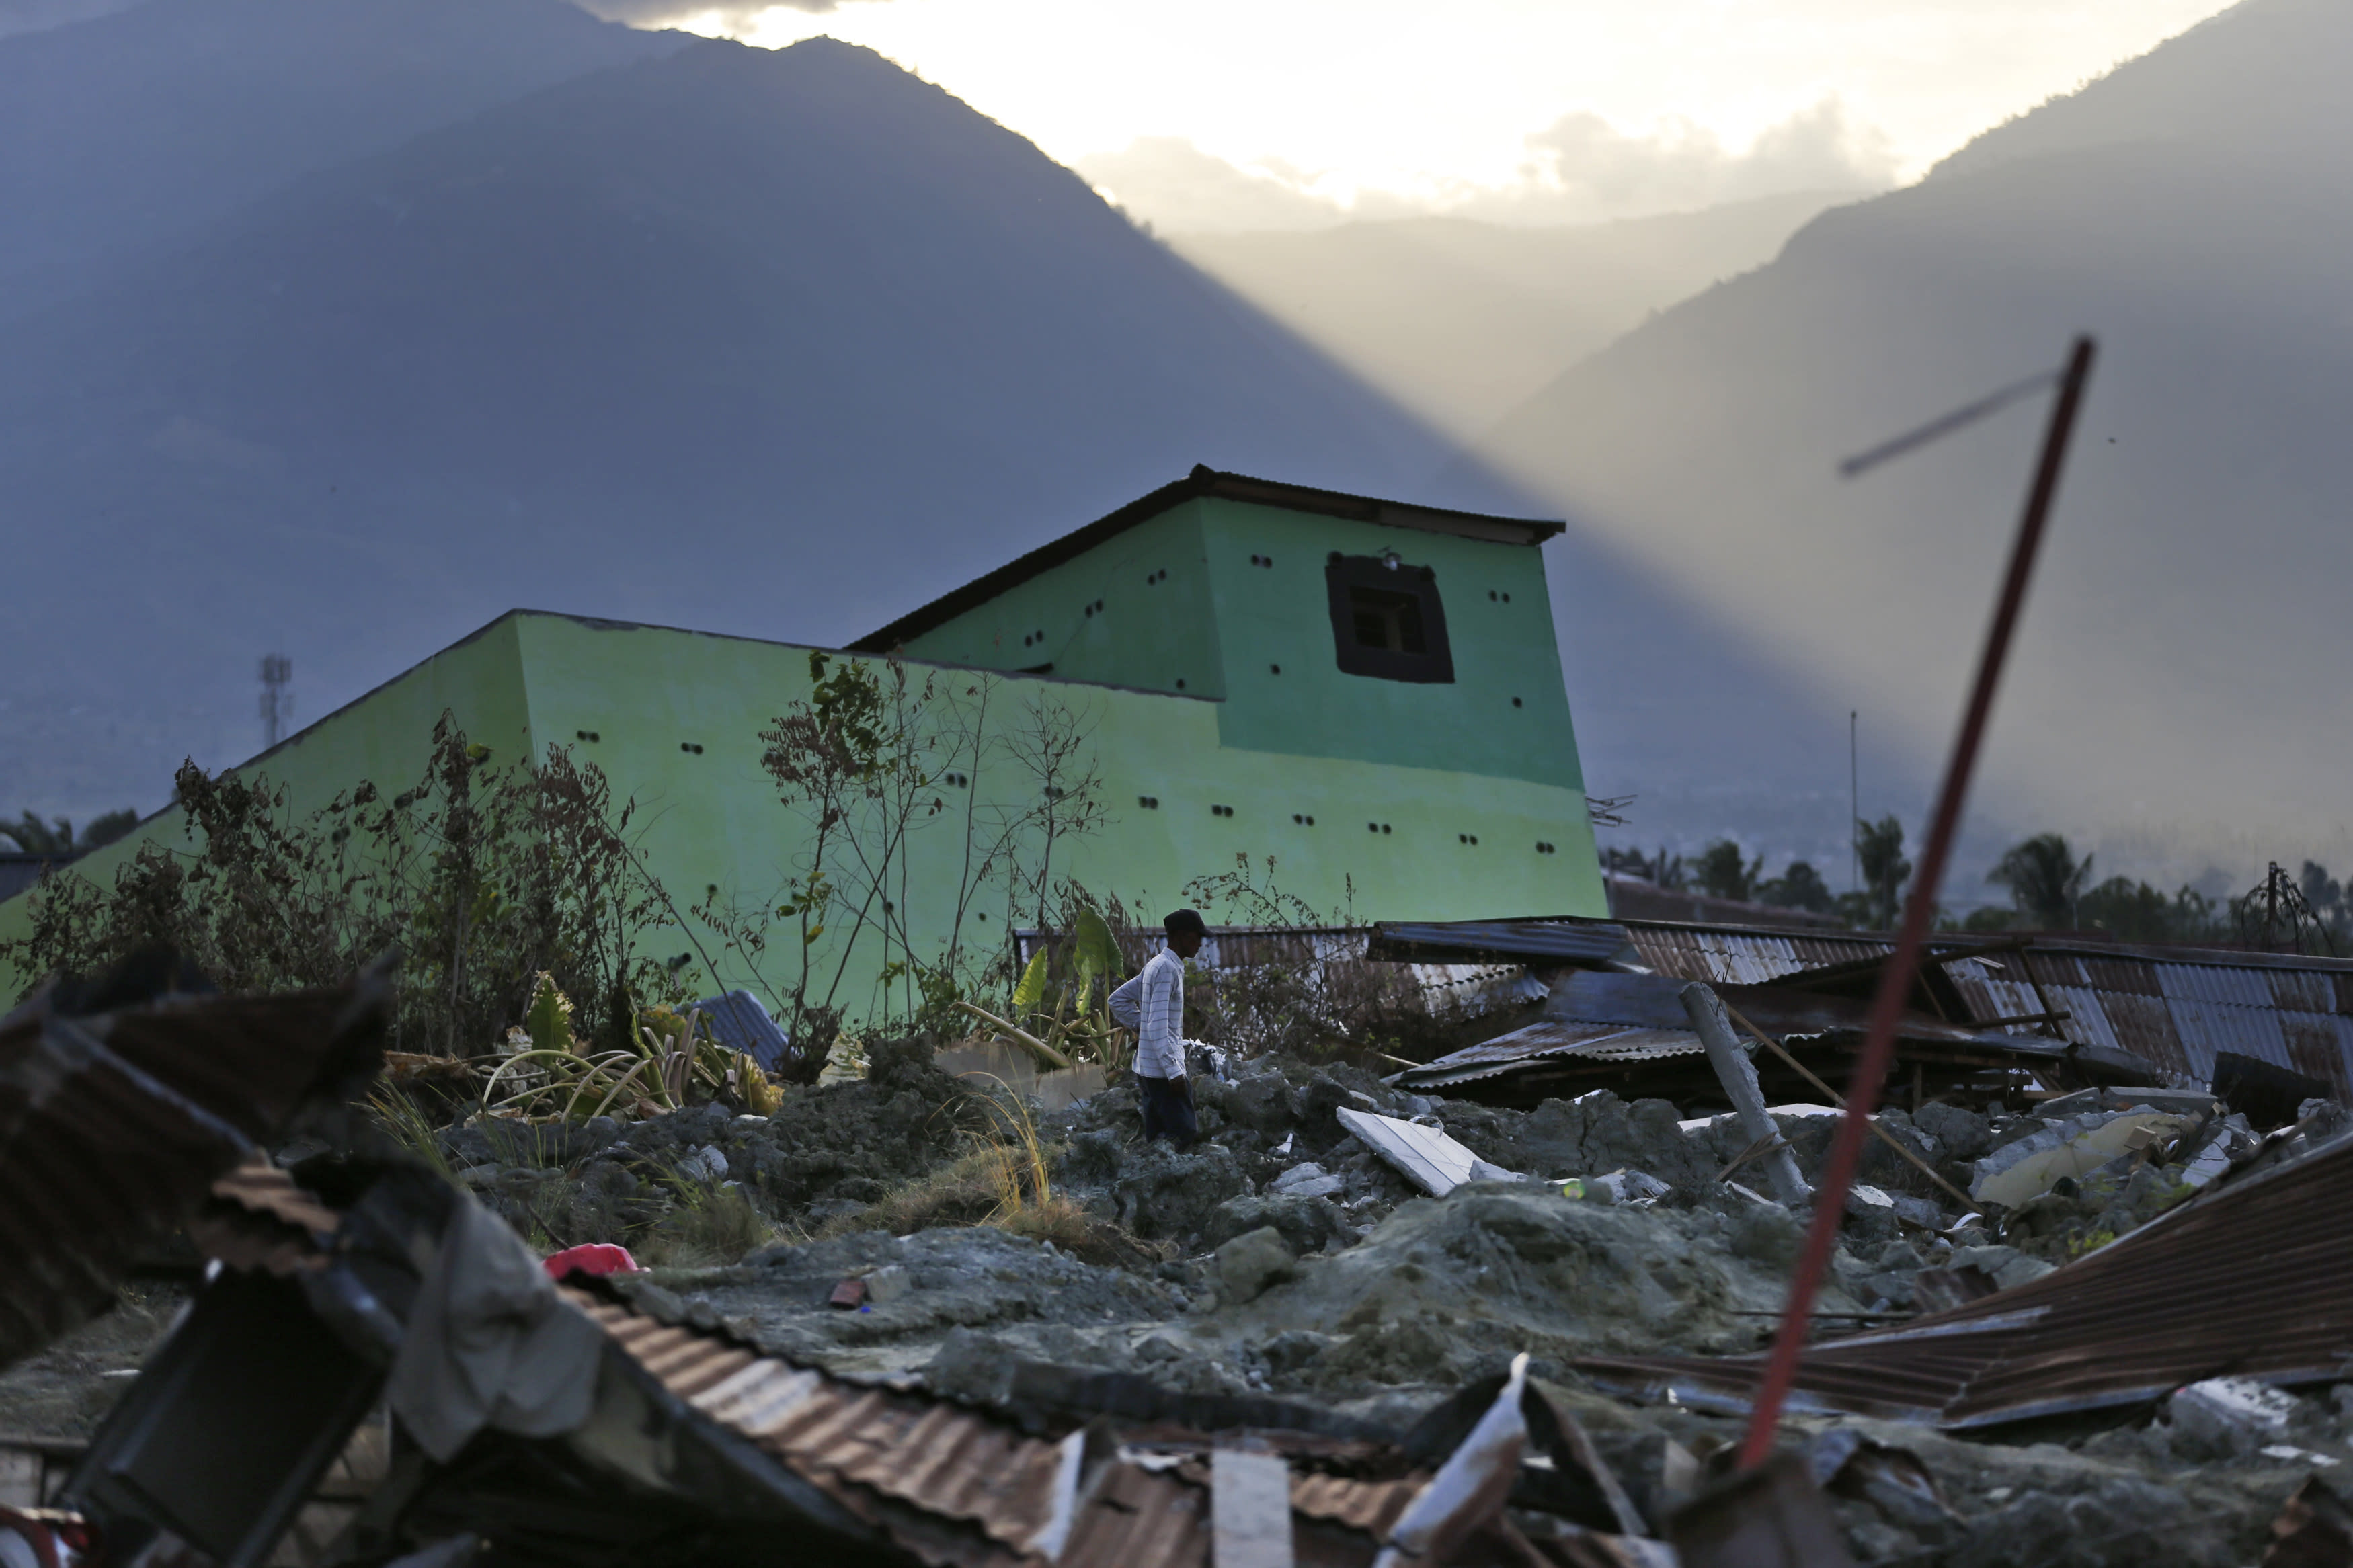 A man surveys the damage suffered byPetobo neighborhood which was wiped out by earthquake-triggered liquefaction as the sun set in Palu, Central Sulawesi, Indonesia, Sunday, Oct. 7, 2018. Indonesia's disaster agency said the number of dead had climbed and many more people could be buried, especially in the Palu neighborhoods of Petobo and Balaroa, where thousands of homes were damaged or sucked into deep mud when the Sept. 28 quake caused loose soil to liquefy. (AP Photo/Dita Alangkara)